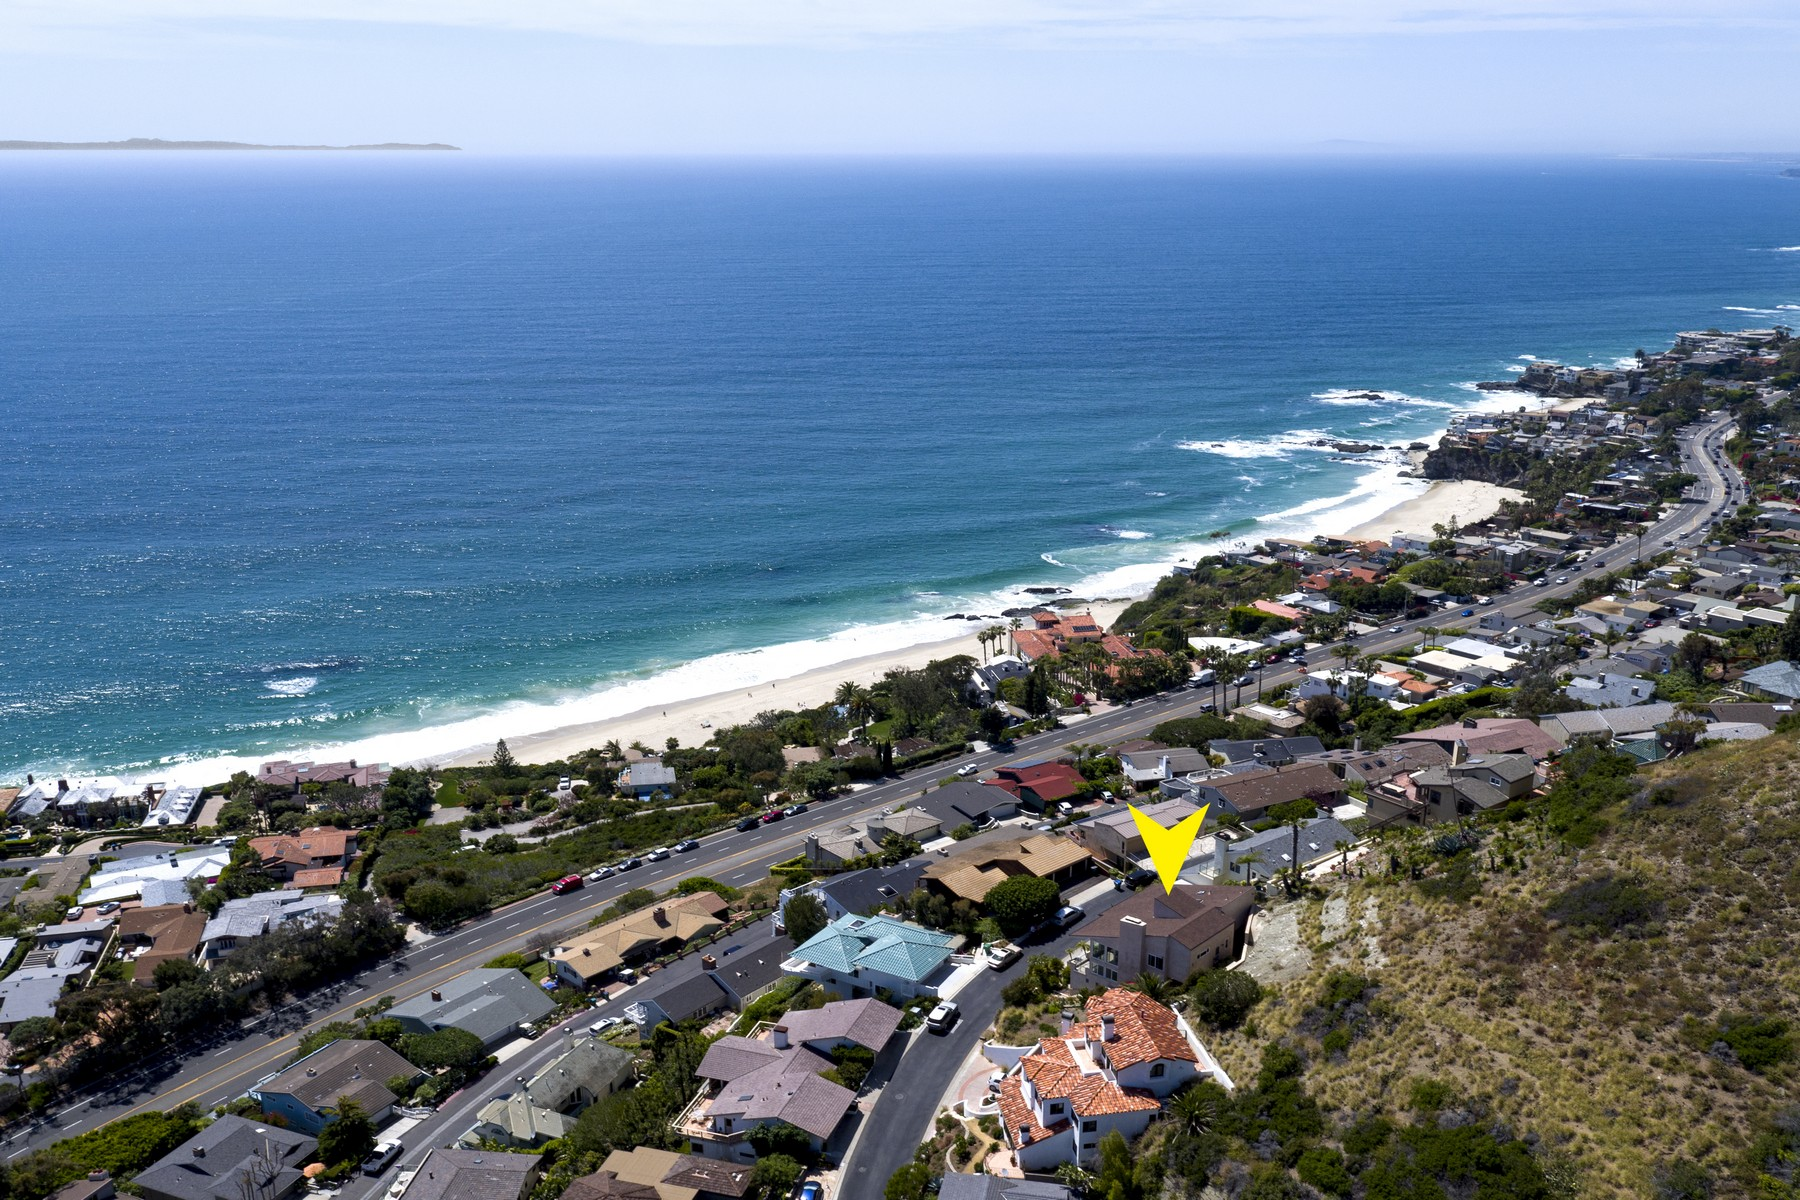 Single Family Home for Sale at 11 N. Vista De Catalina Laguna Beach, California, 92651 United States